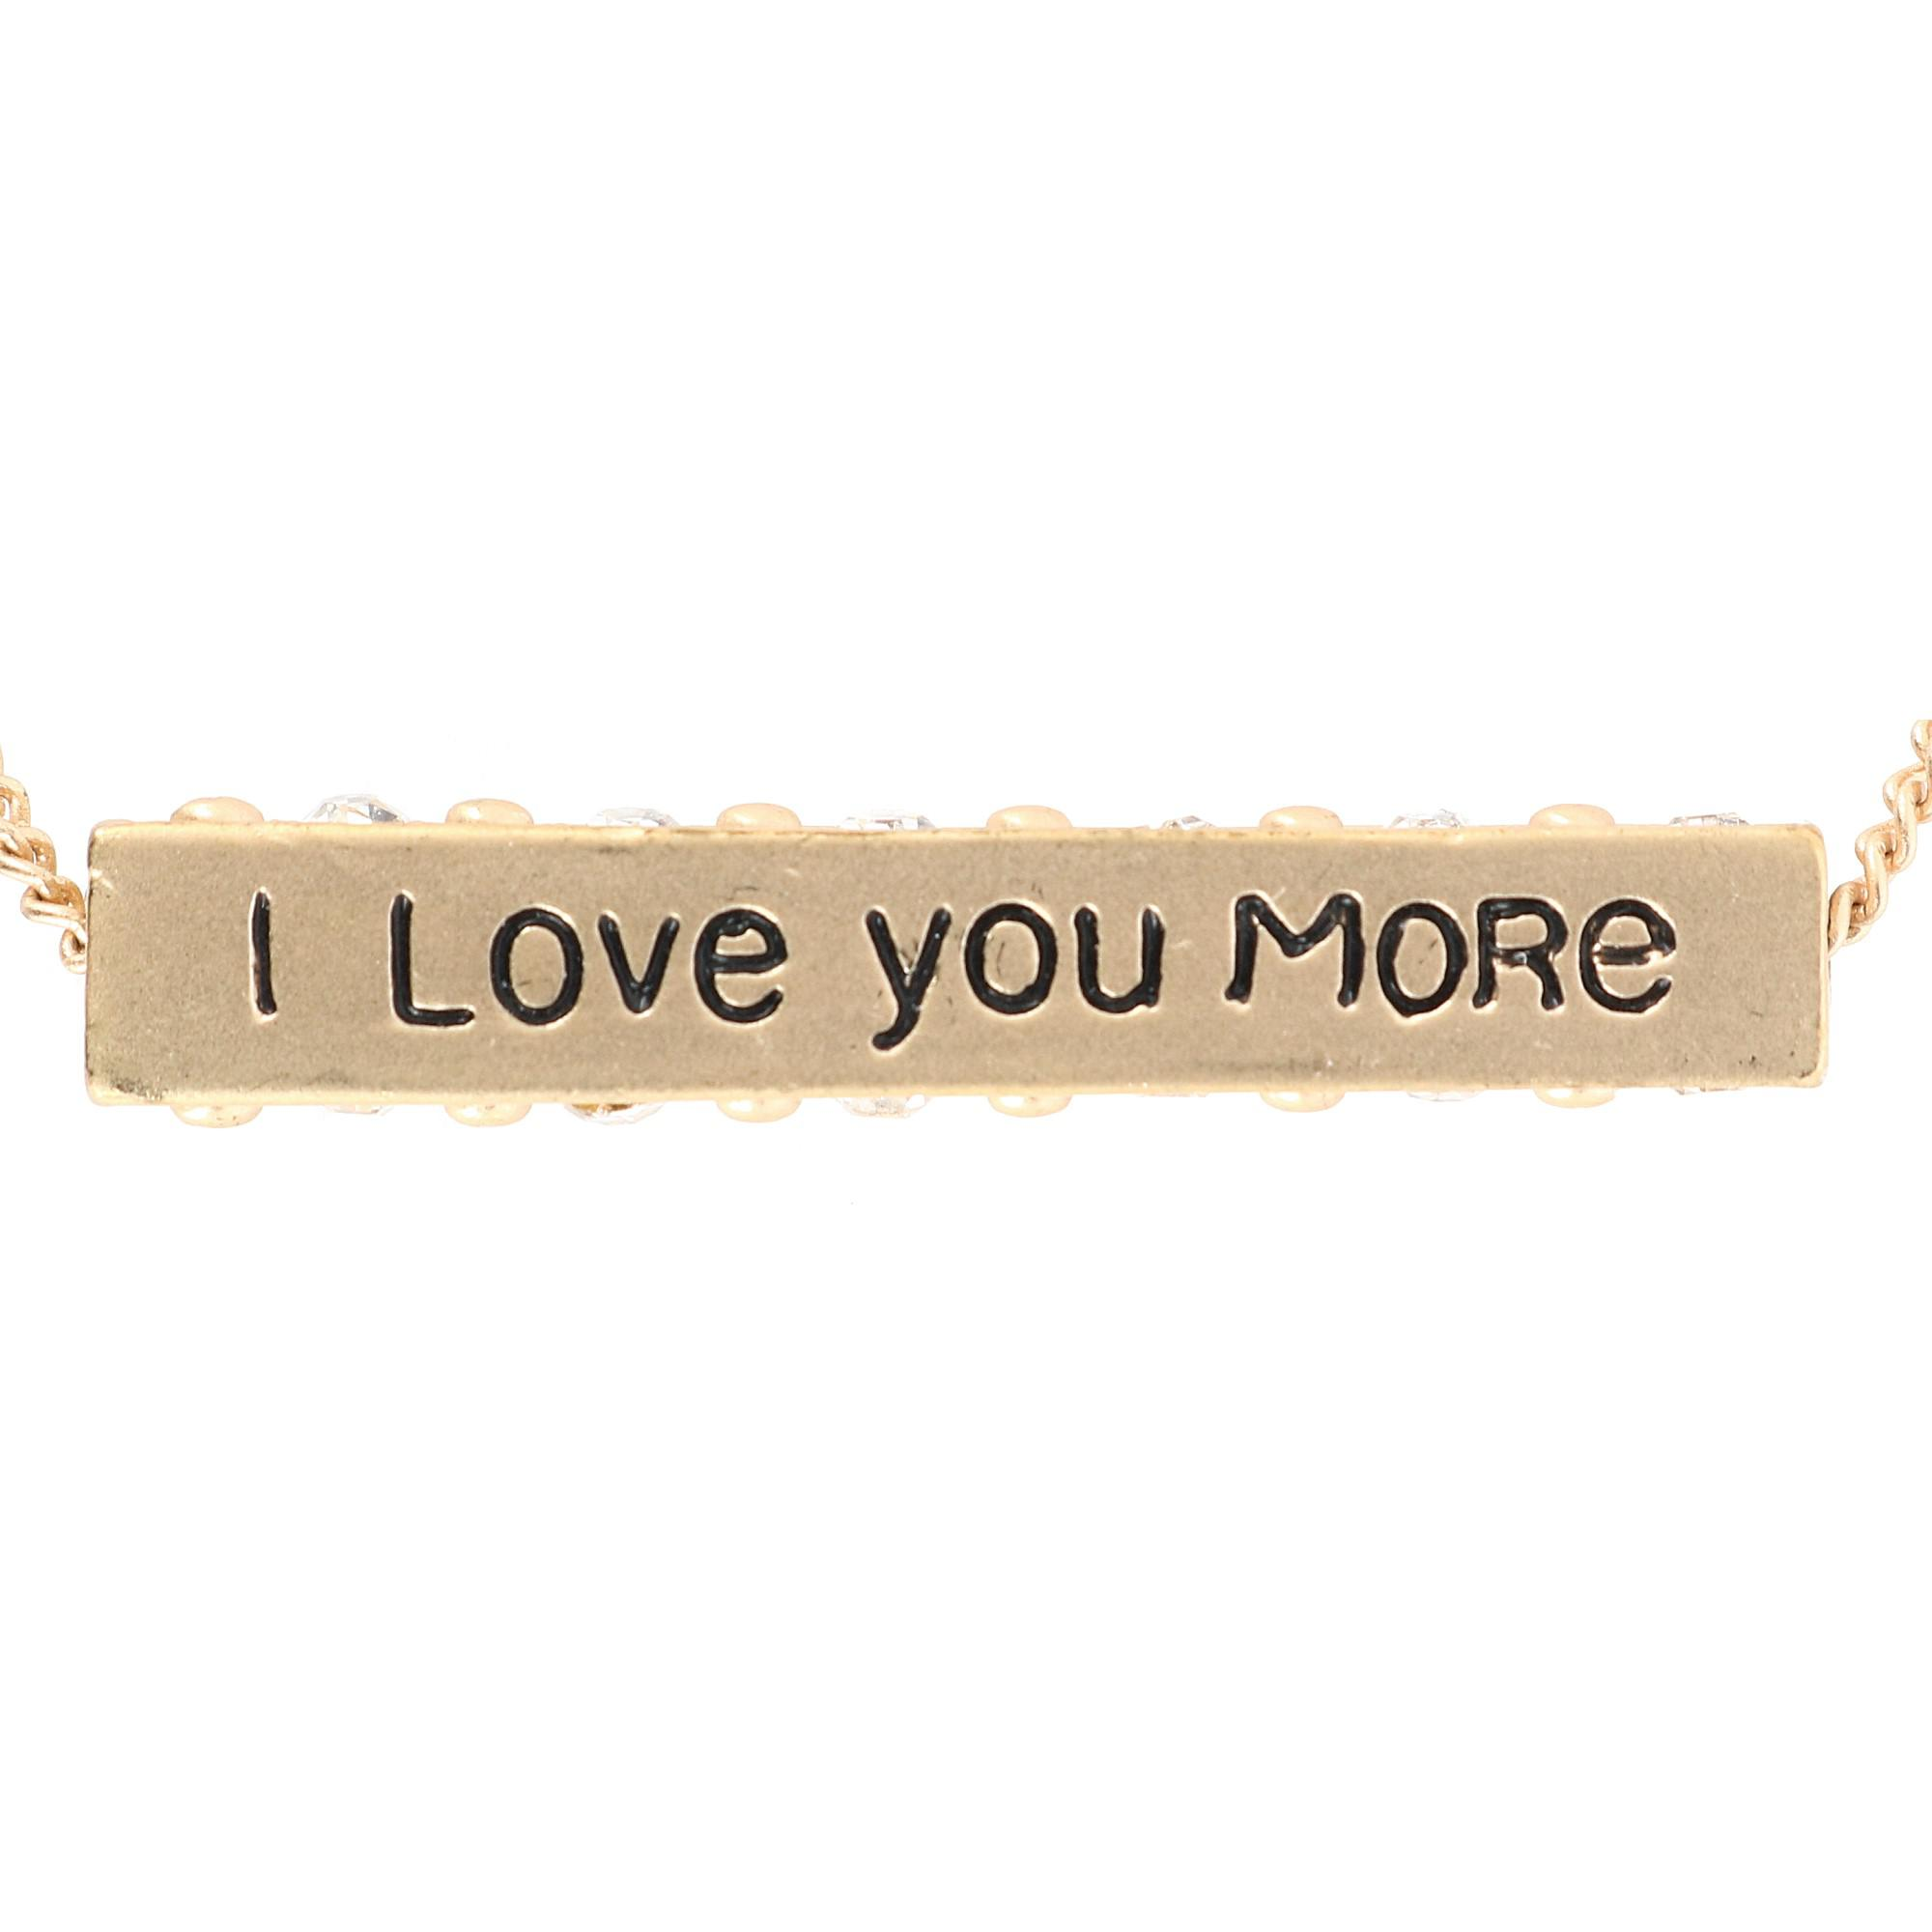 Accessorize Me I Love You More Bar Pendant Necklace with Rhinestones - image 3 of 5